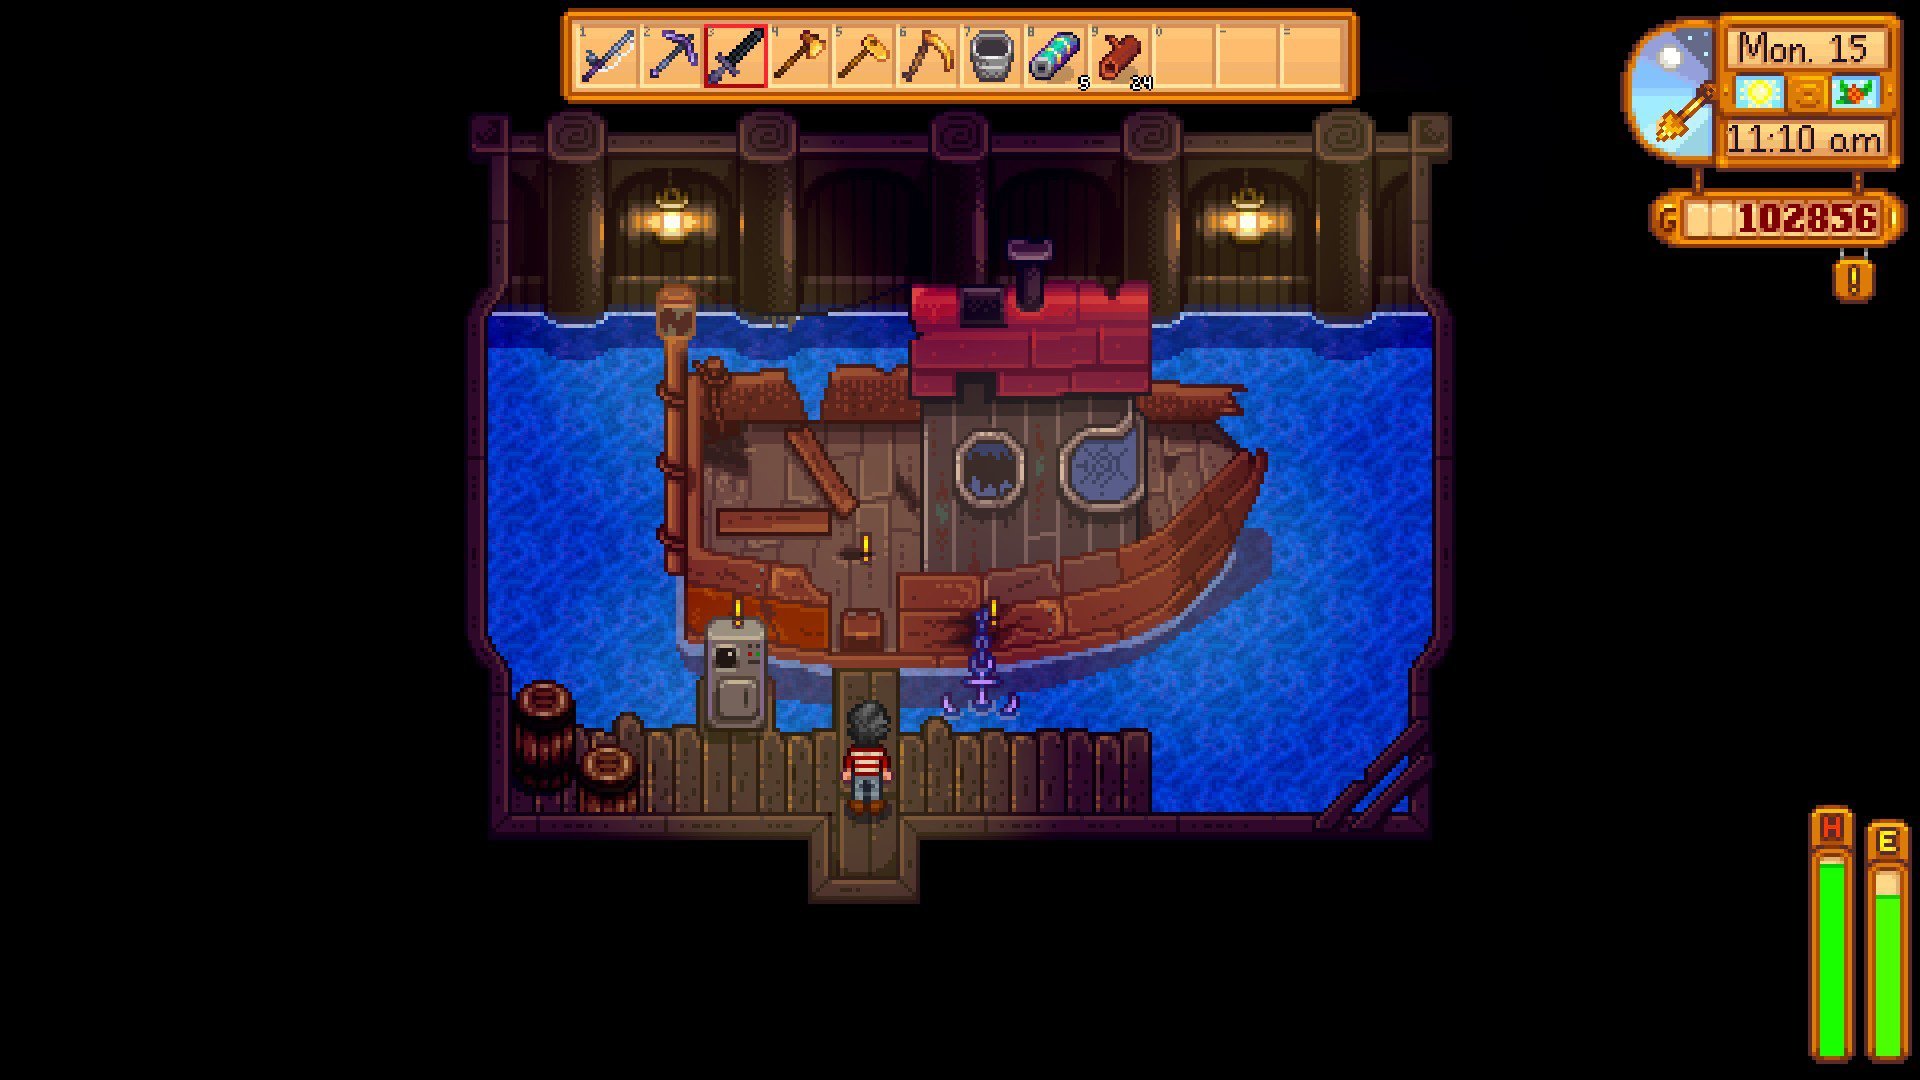 How to fix Willy's boat in Stardew Valley